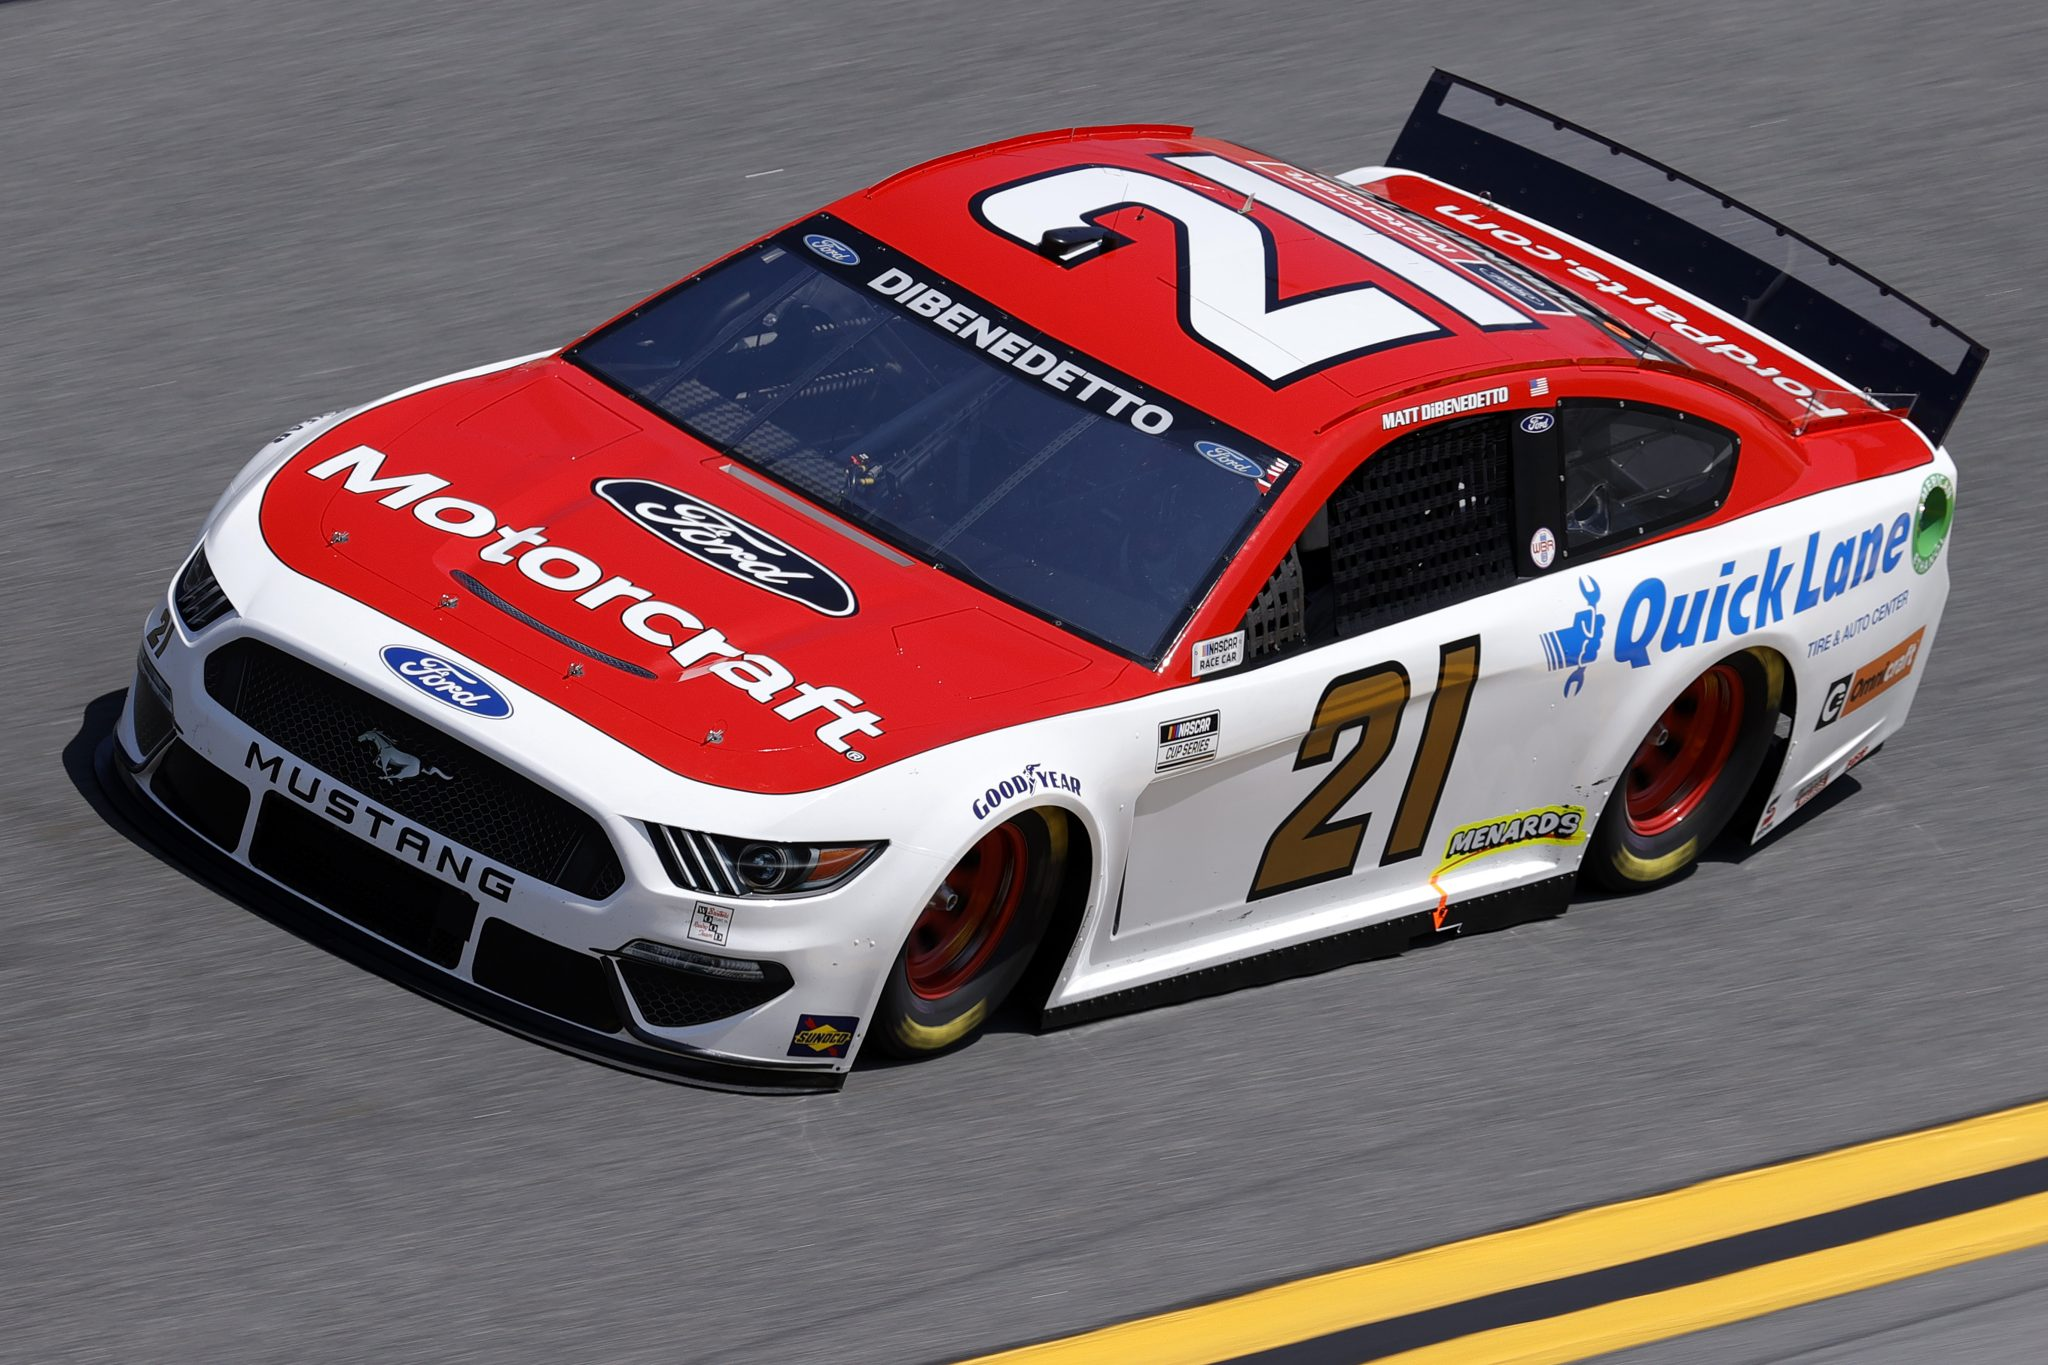 DAYTONA BEACH, FLORIDA - FEBRUARY 10: Matt DiBenedetto, driver of the #21 Motorcraft/Quick Lane Ford, drives during practice for the NASCAR Cup Series 63rd Annual Daytona 500 at Daytona International Speedway on February 10, 2021 in Daytona Beach, Florida. (Photo by Jared C. Tilton/Getty Images) | Getty Images